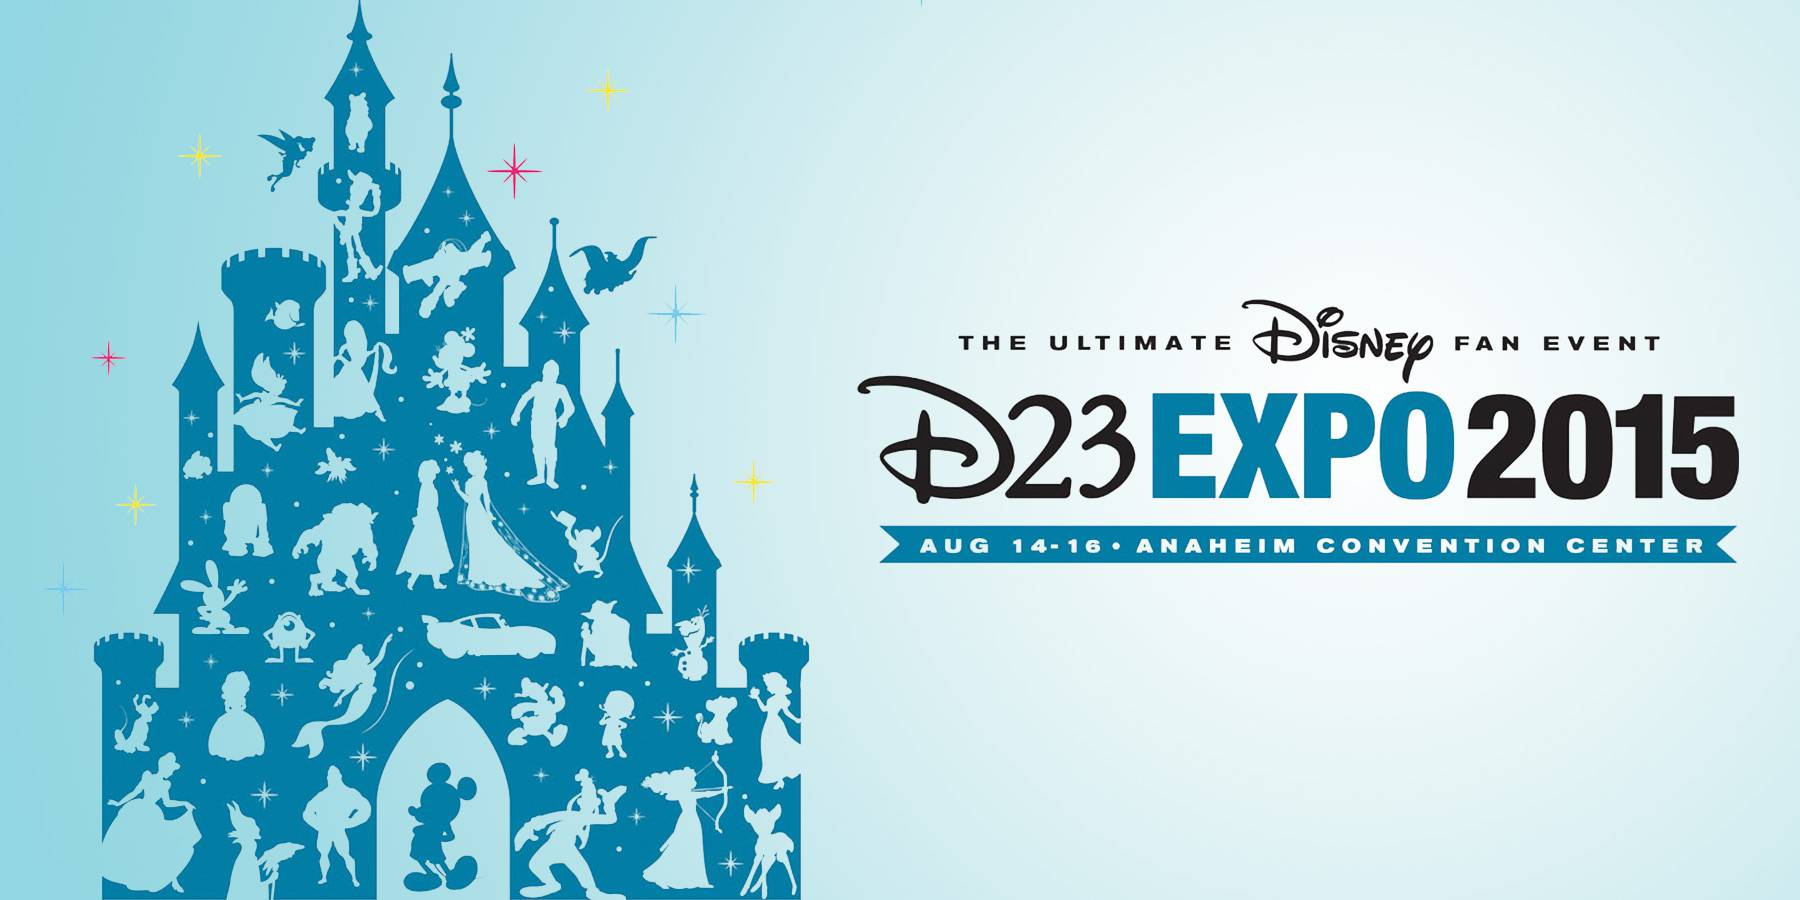 Disney Interactive Brings Star Wars Games to D23 EXPO 2015